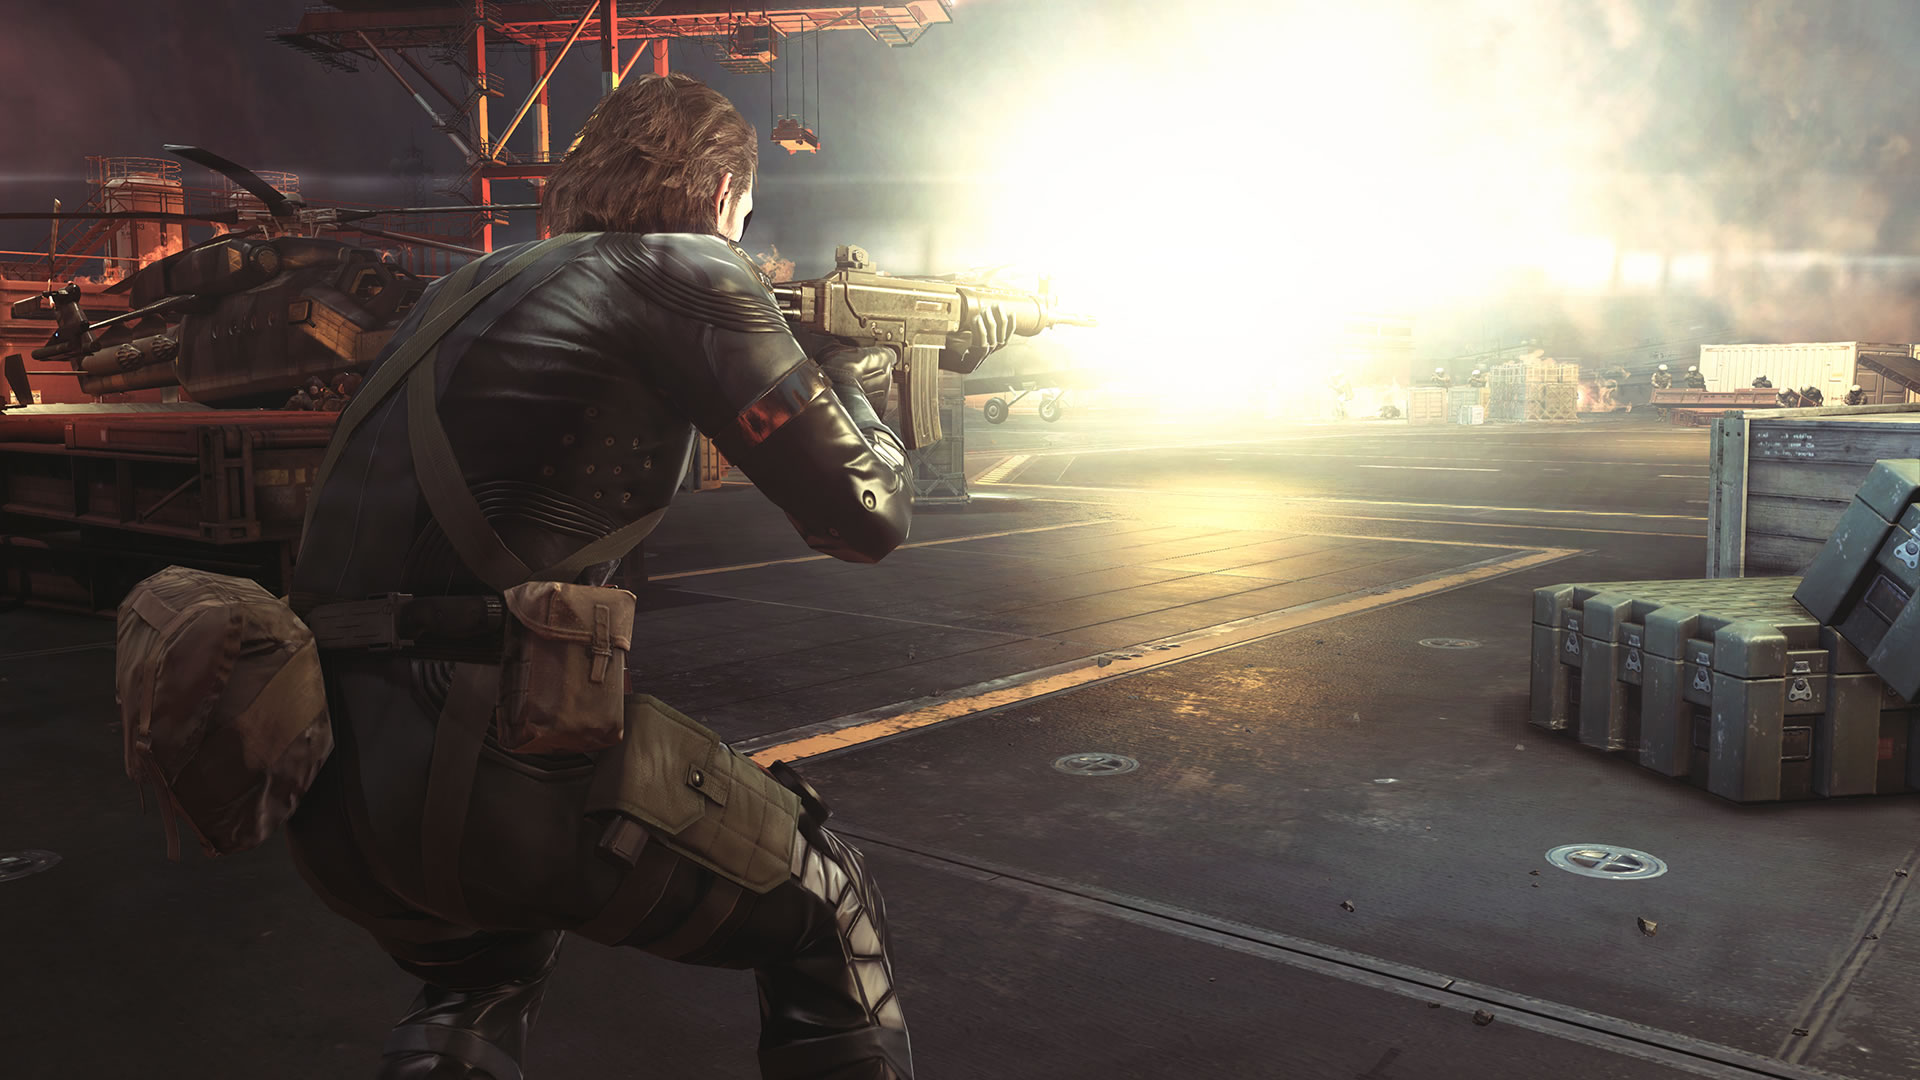 Une flopée d'images impressionnantes de Metal Gear Solid V : Ground Zeroes sur PC